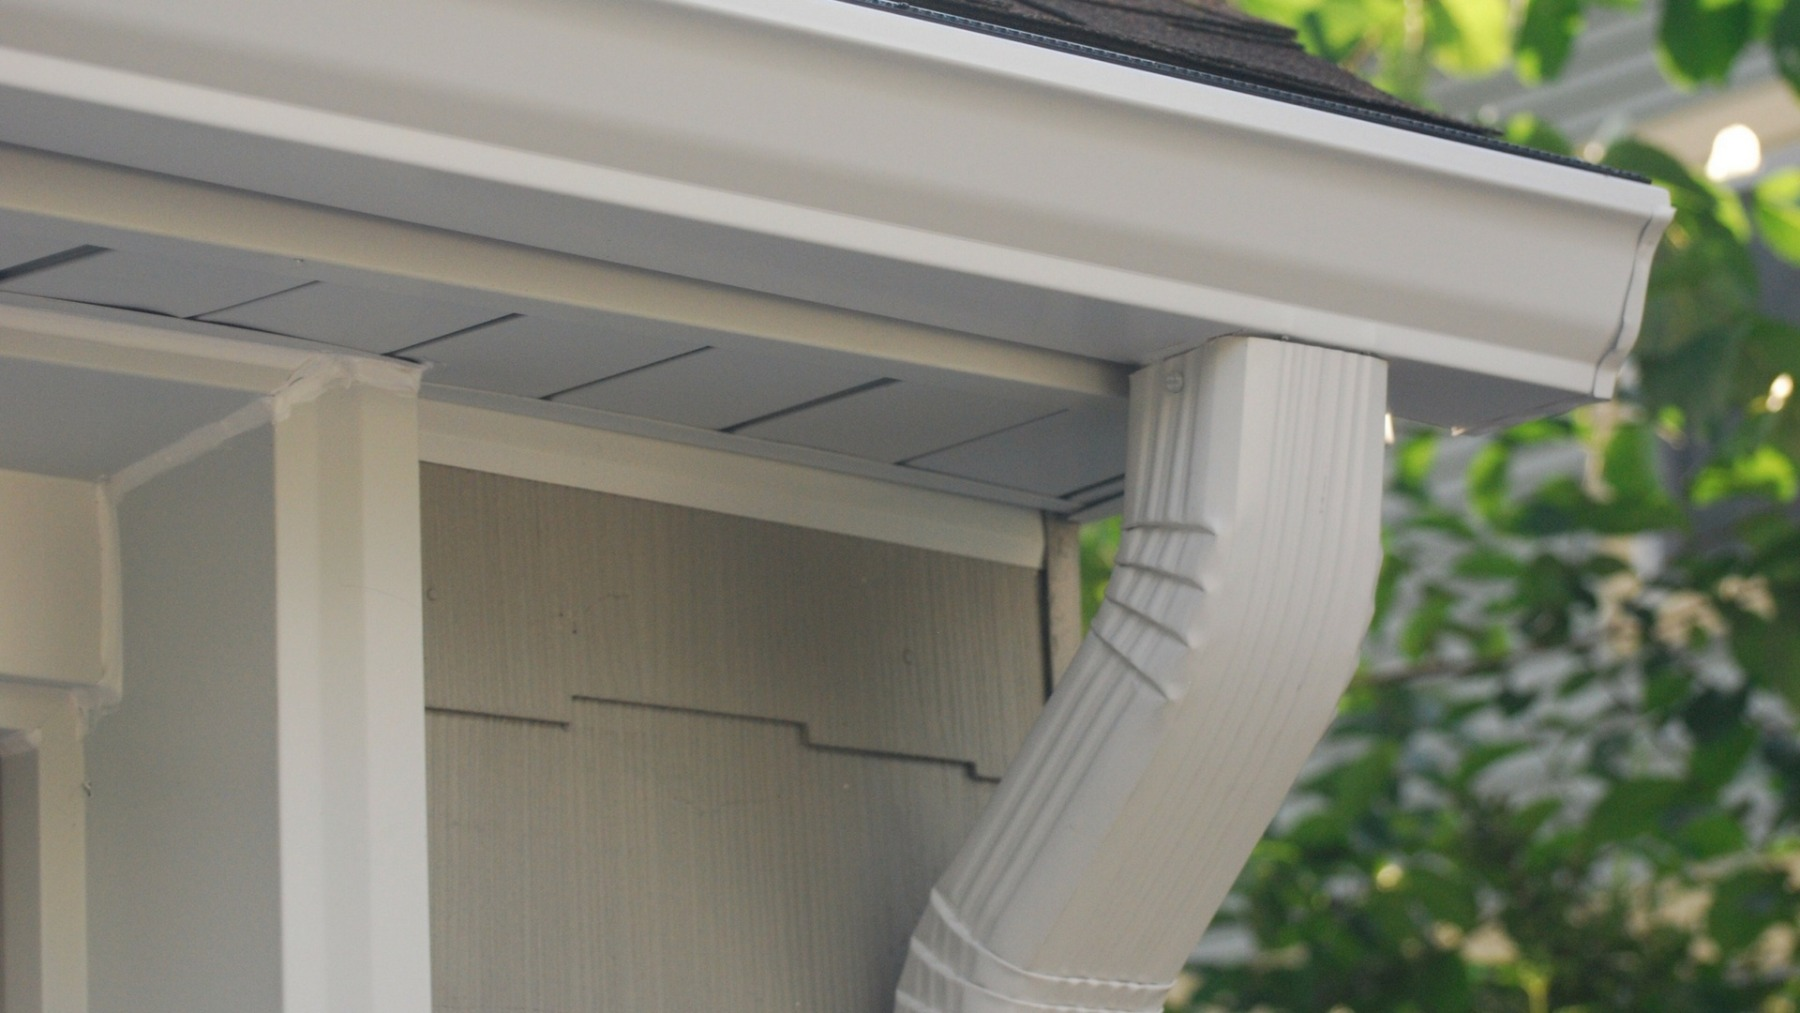 We offer many different gutter materials to choose from. The seamless Gutters ensure the strong and visually more appealing experience for our customers.